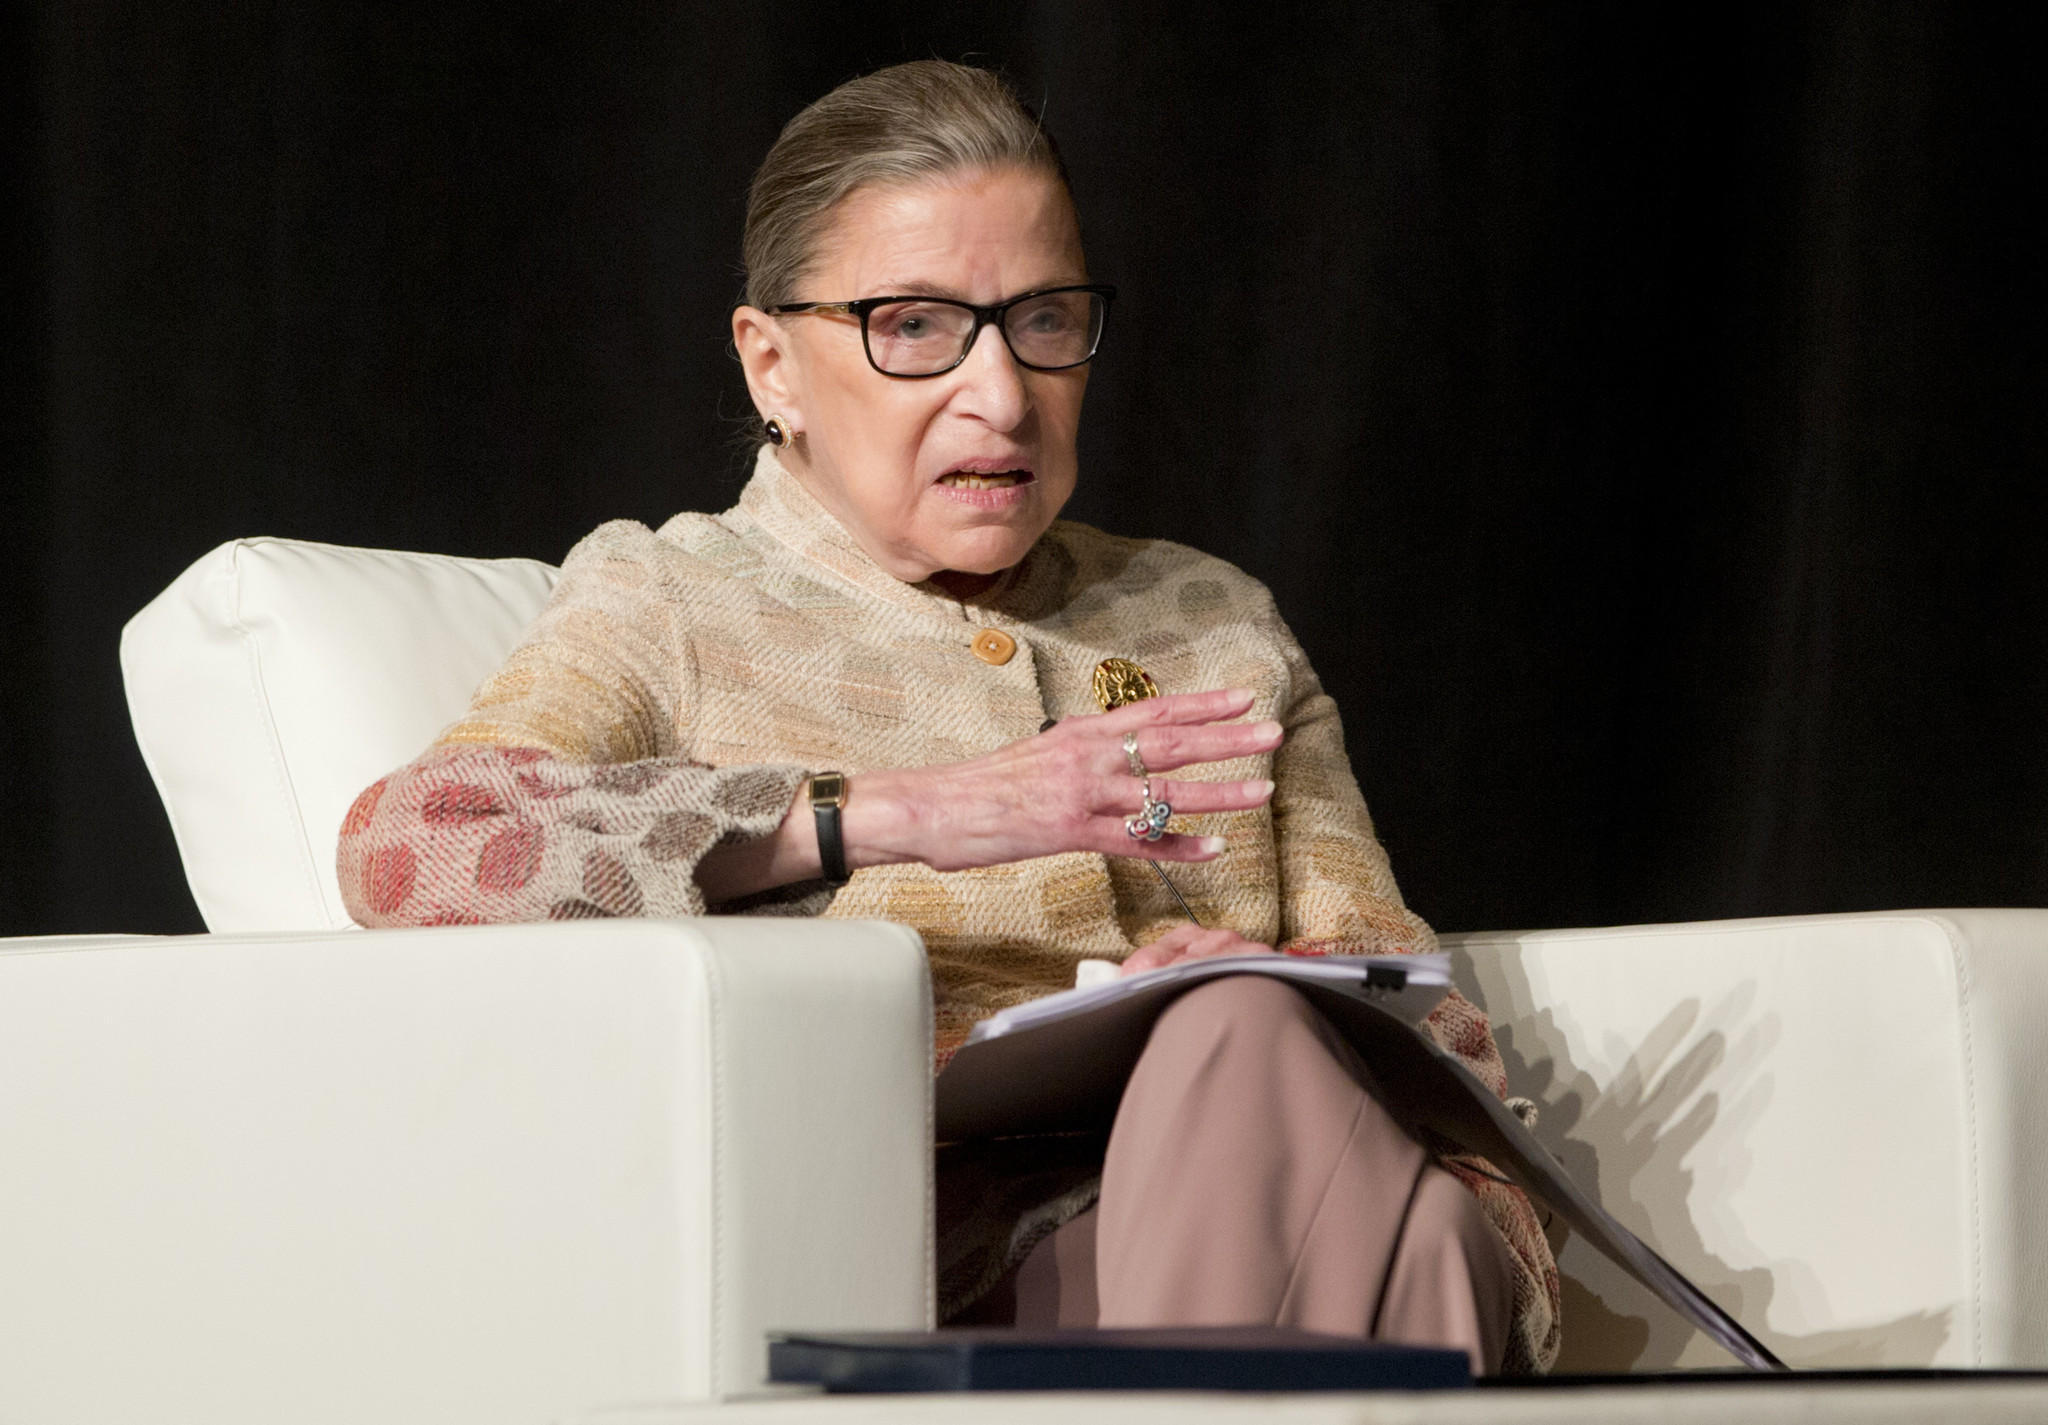 The public feud of Ginsburg vs. Trump casts harsh spotlight on court's liberal lion